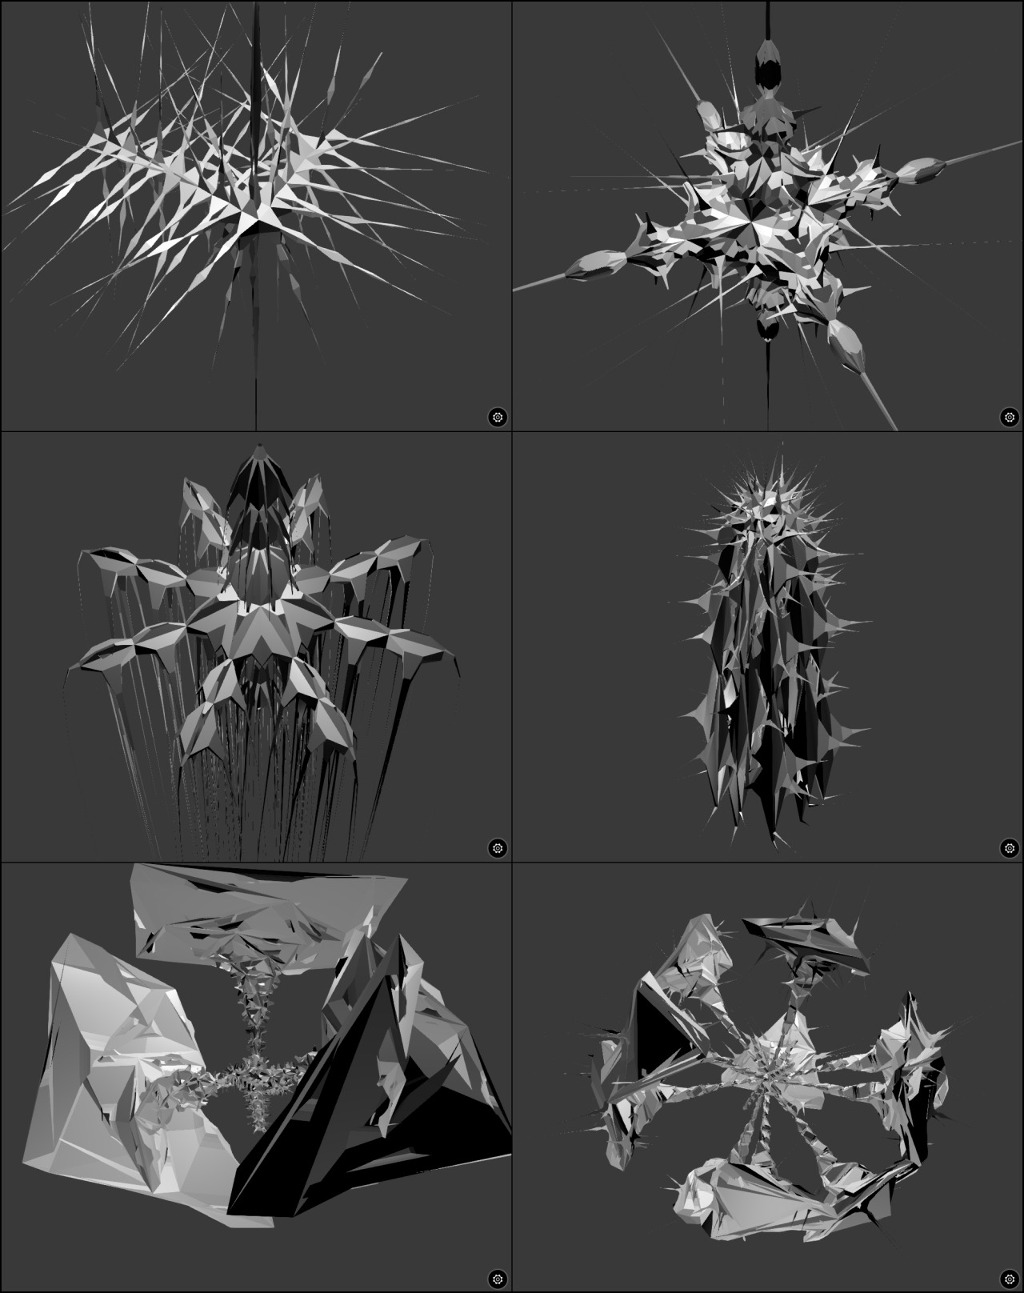 Generative meshes examples